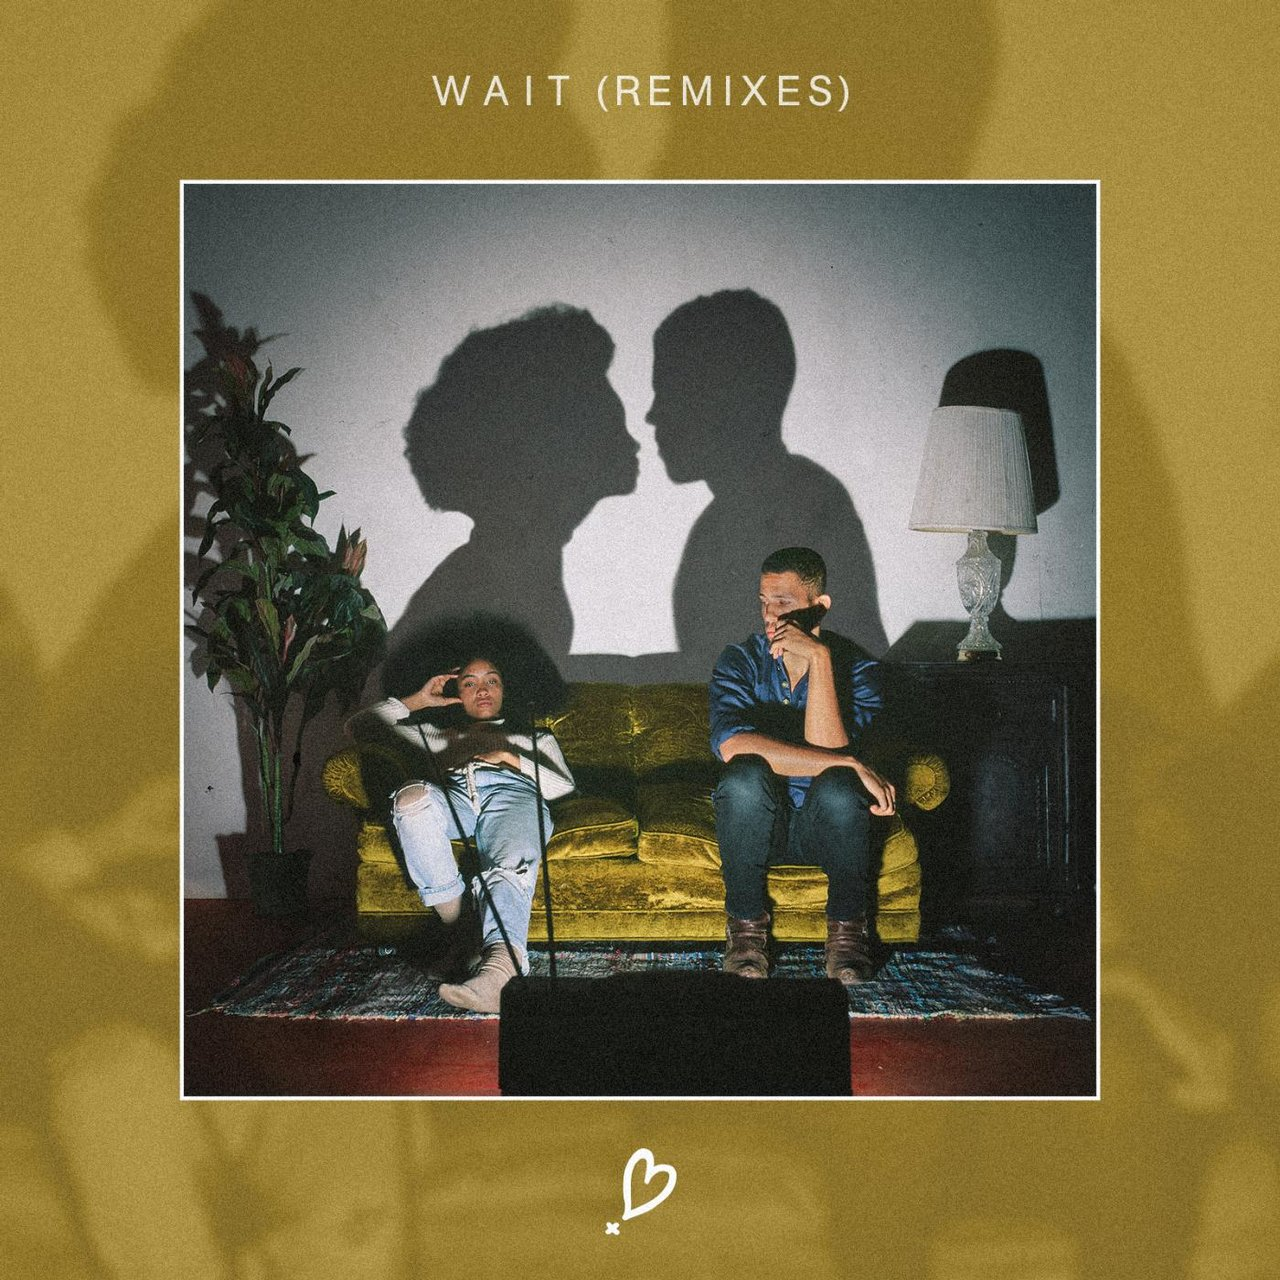 Wait Remixes